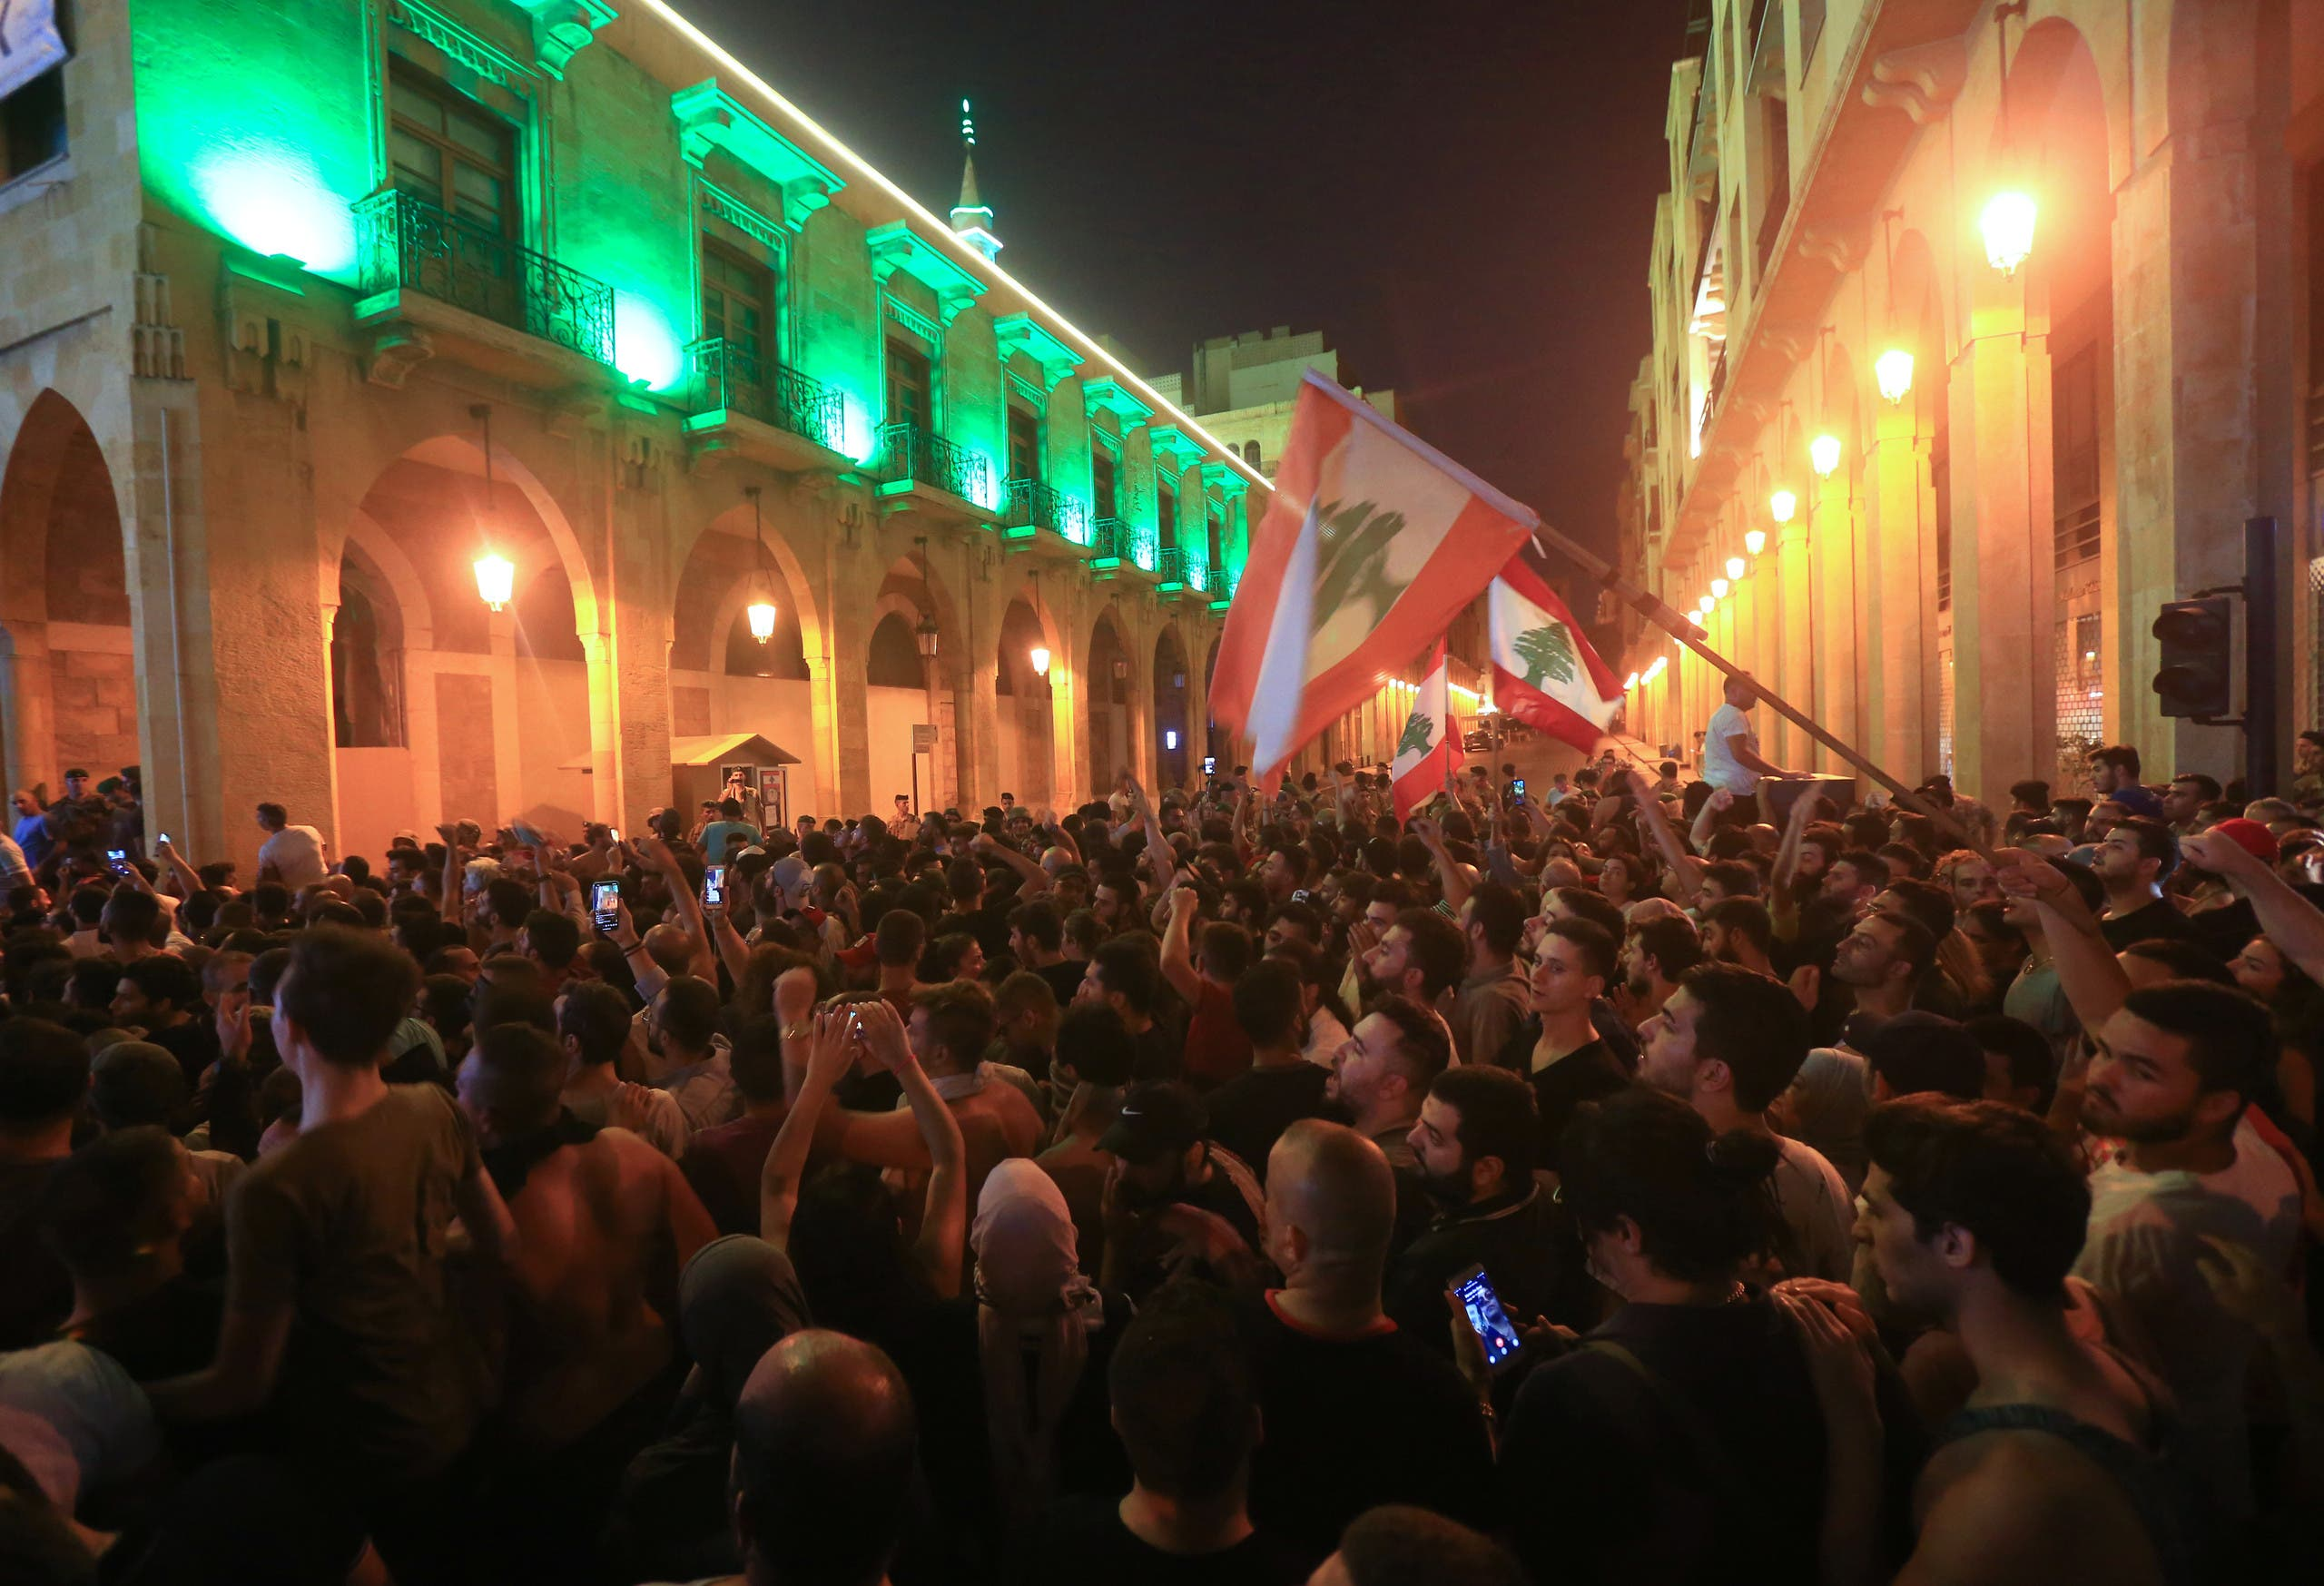 Demonstrators wave flags during a protest against a government decision to tax calls made on messaging applications on October 17, 2019 outside the government palace in Beirut. (AFP)